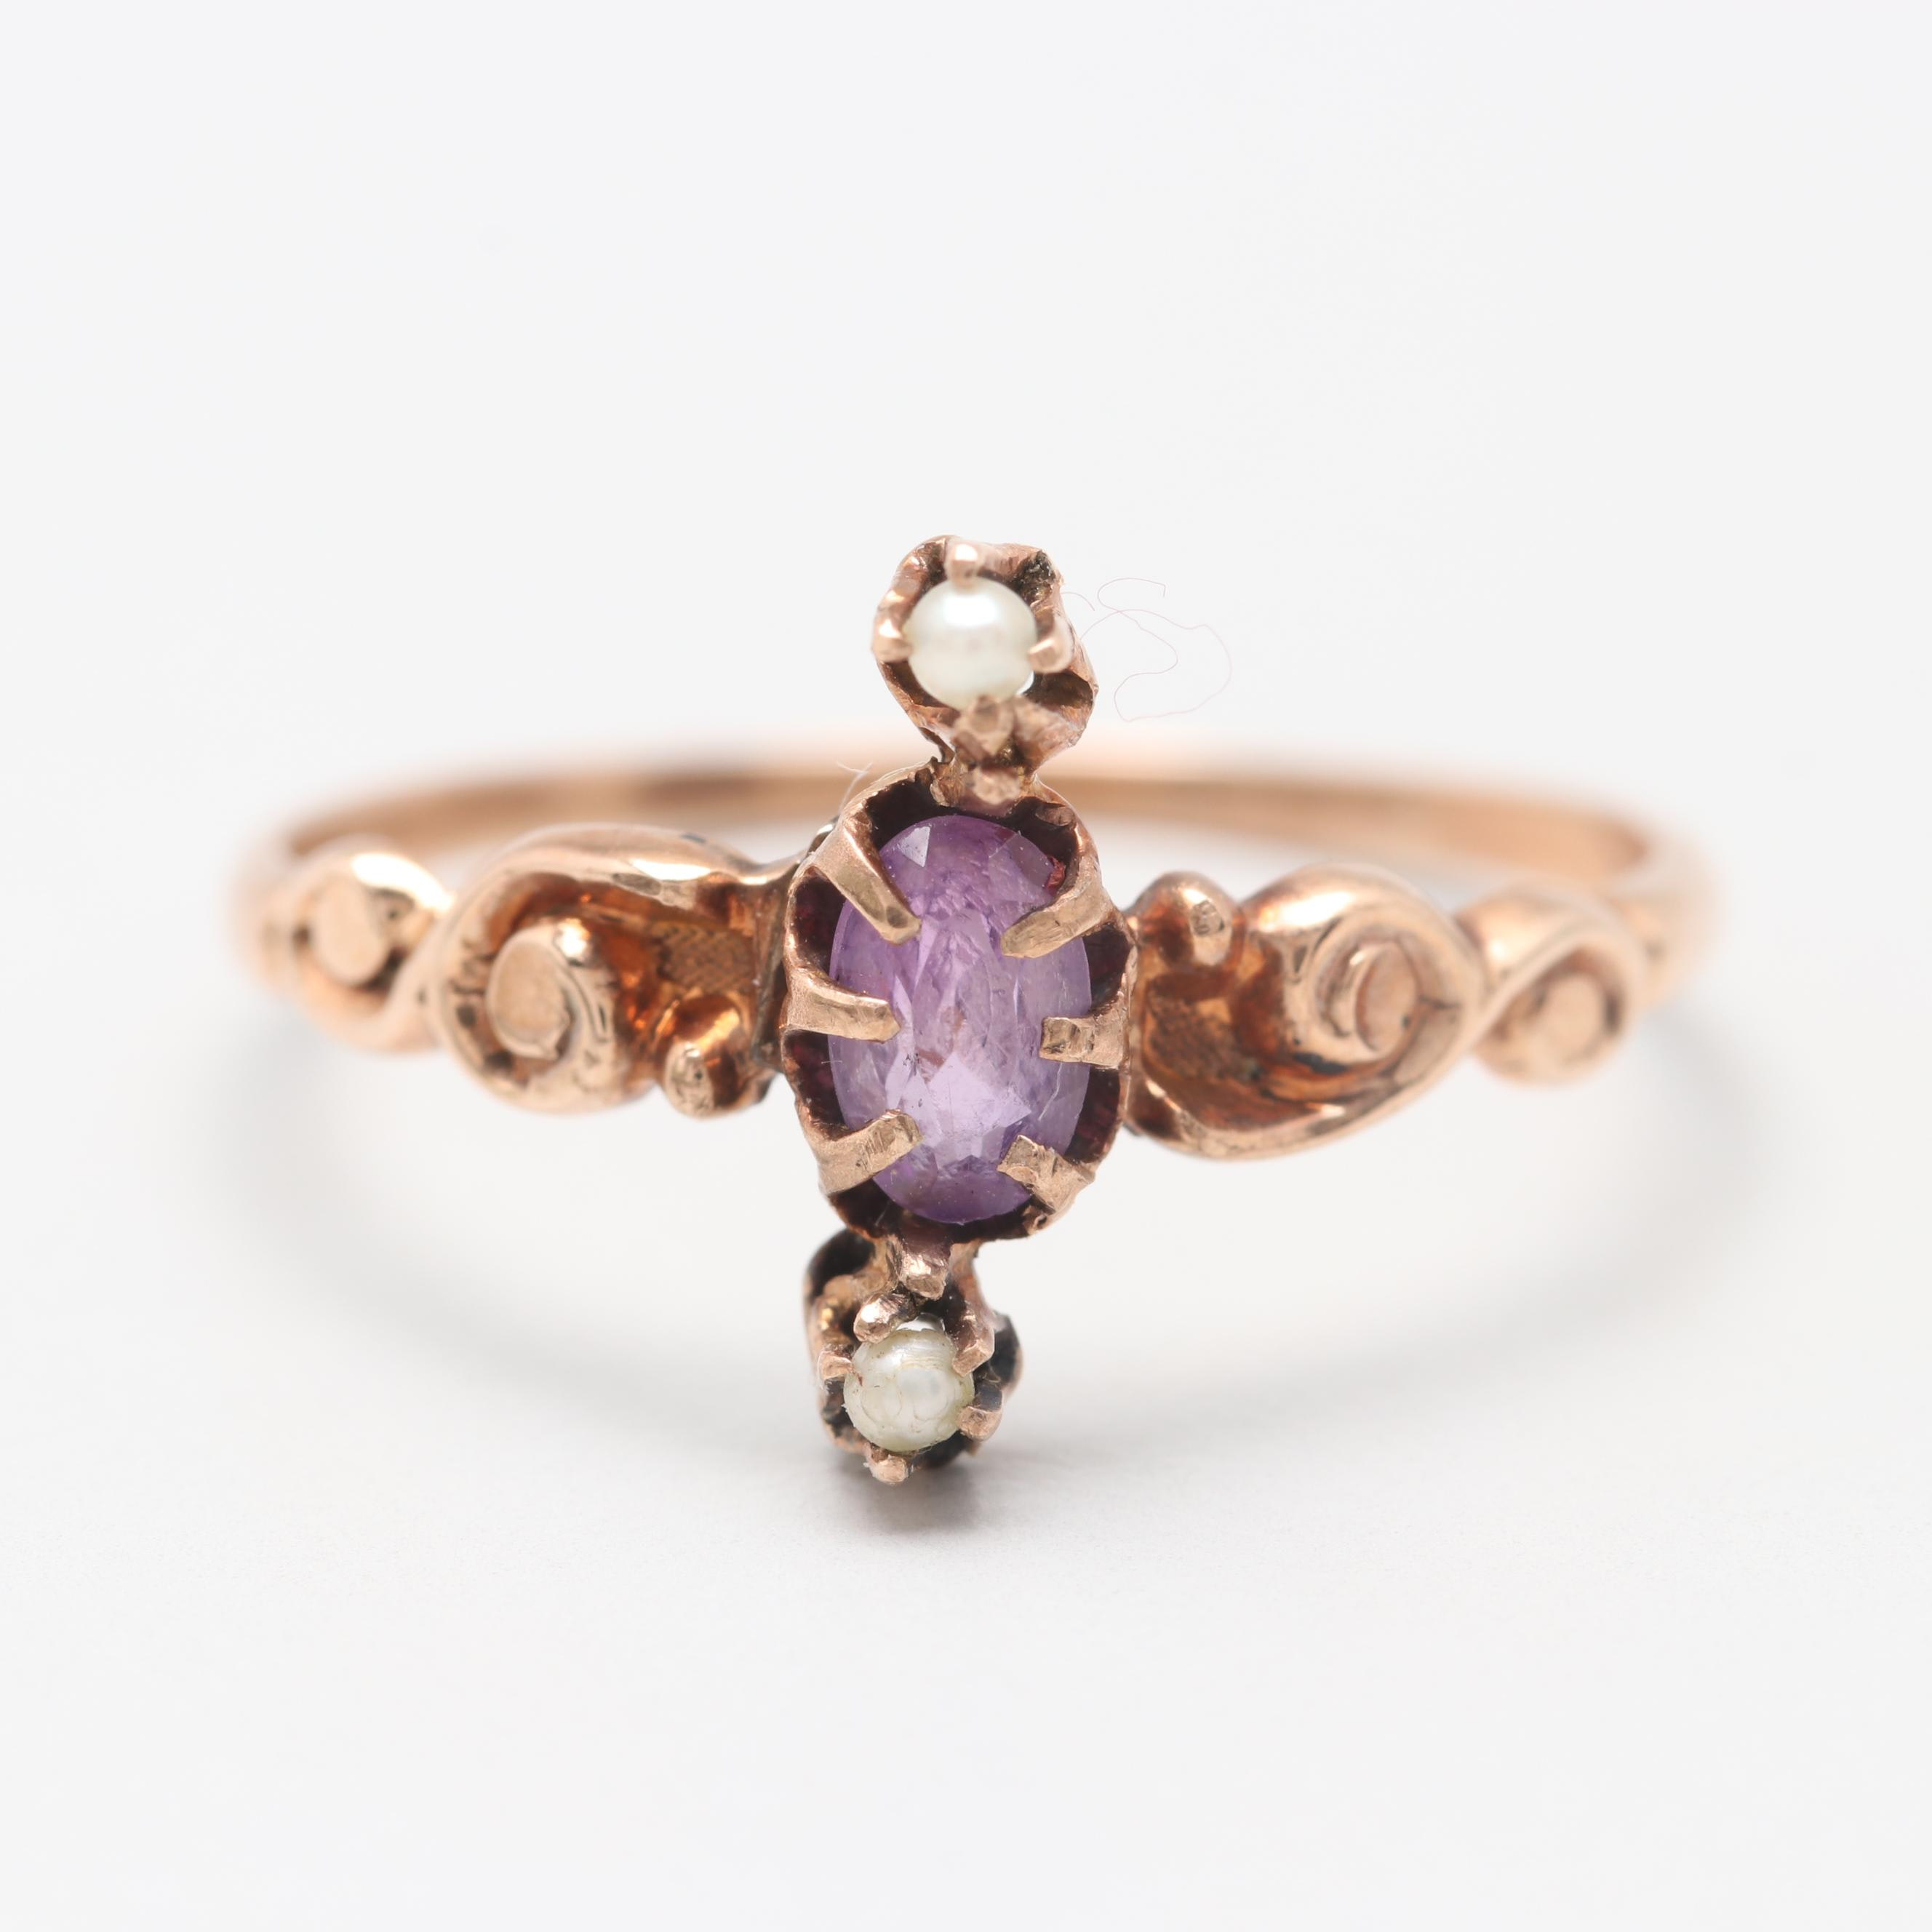 Victorian 10K Yellow Gold Amethyst and Cultured Pearl Ring